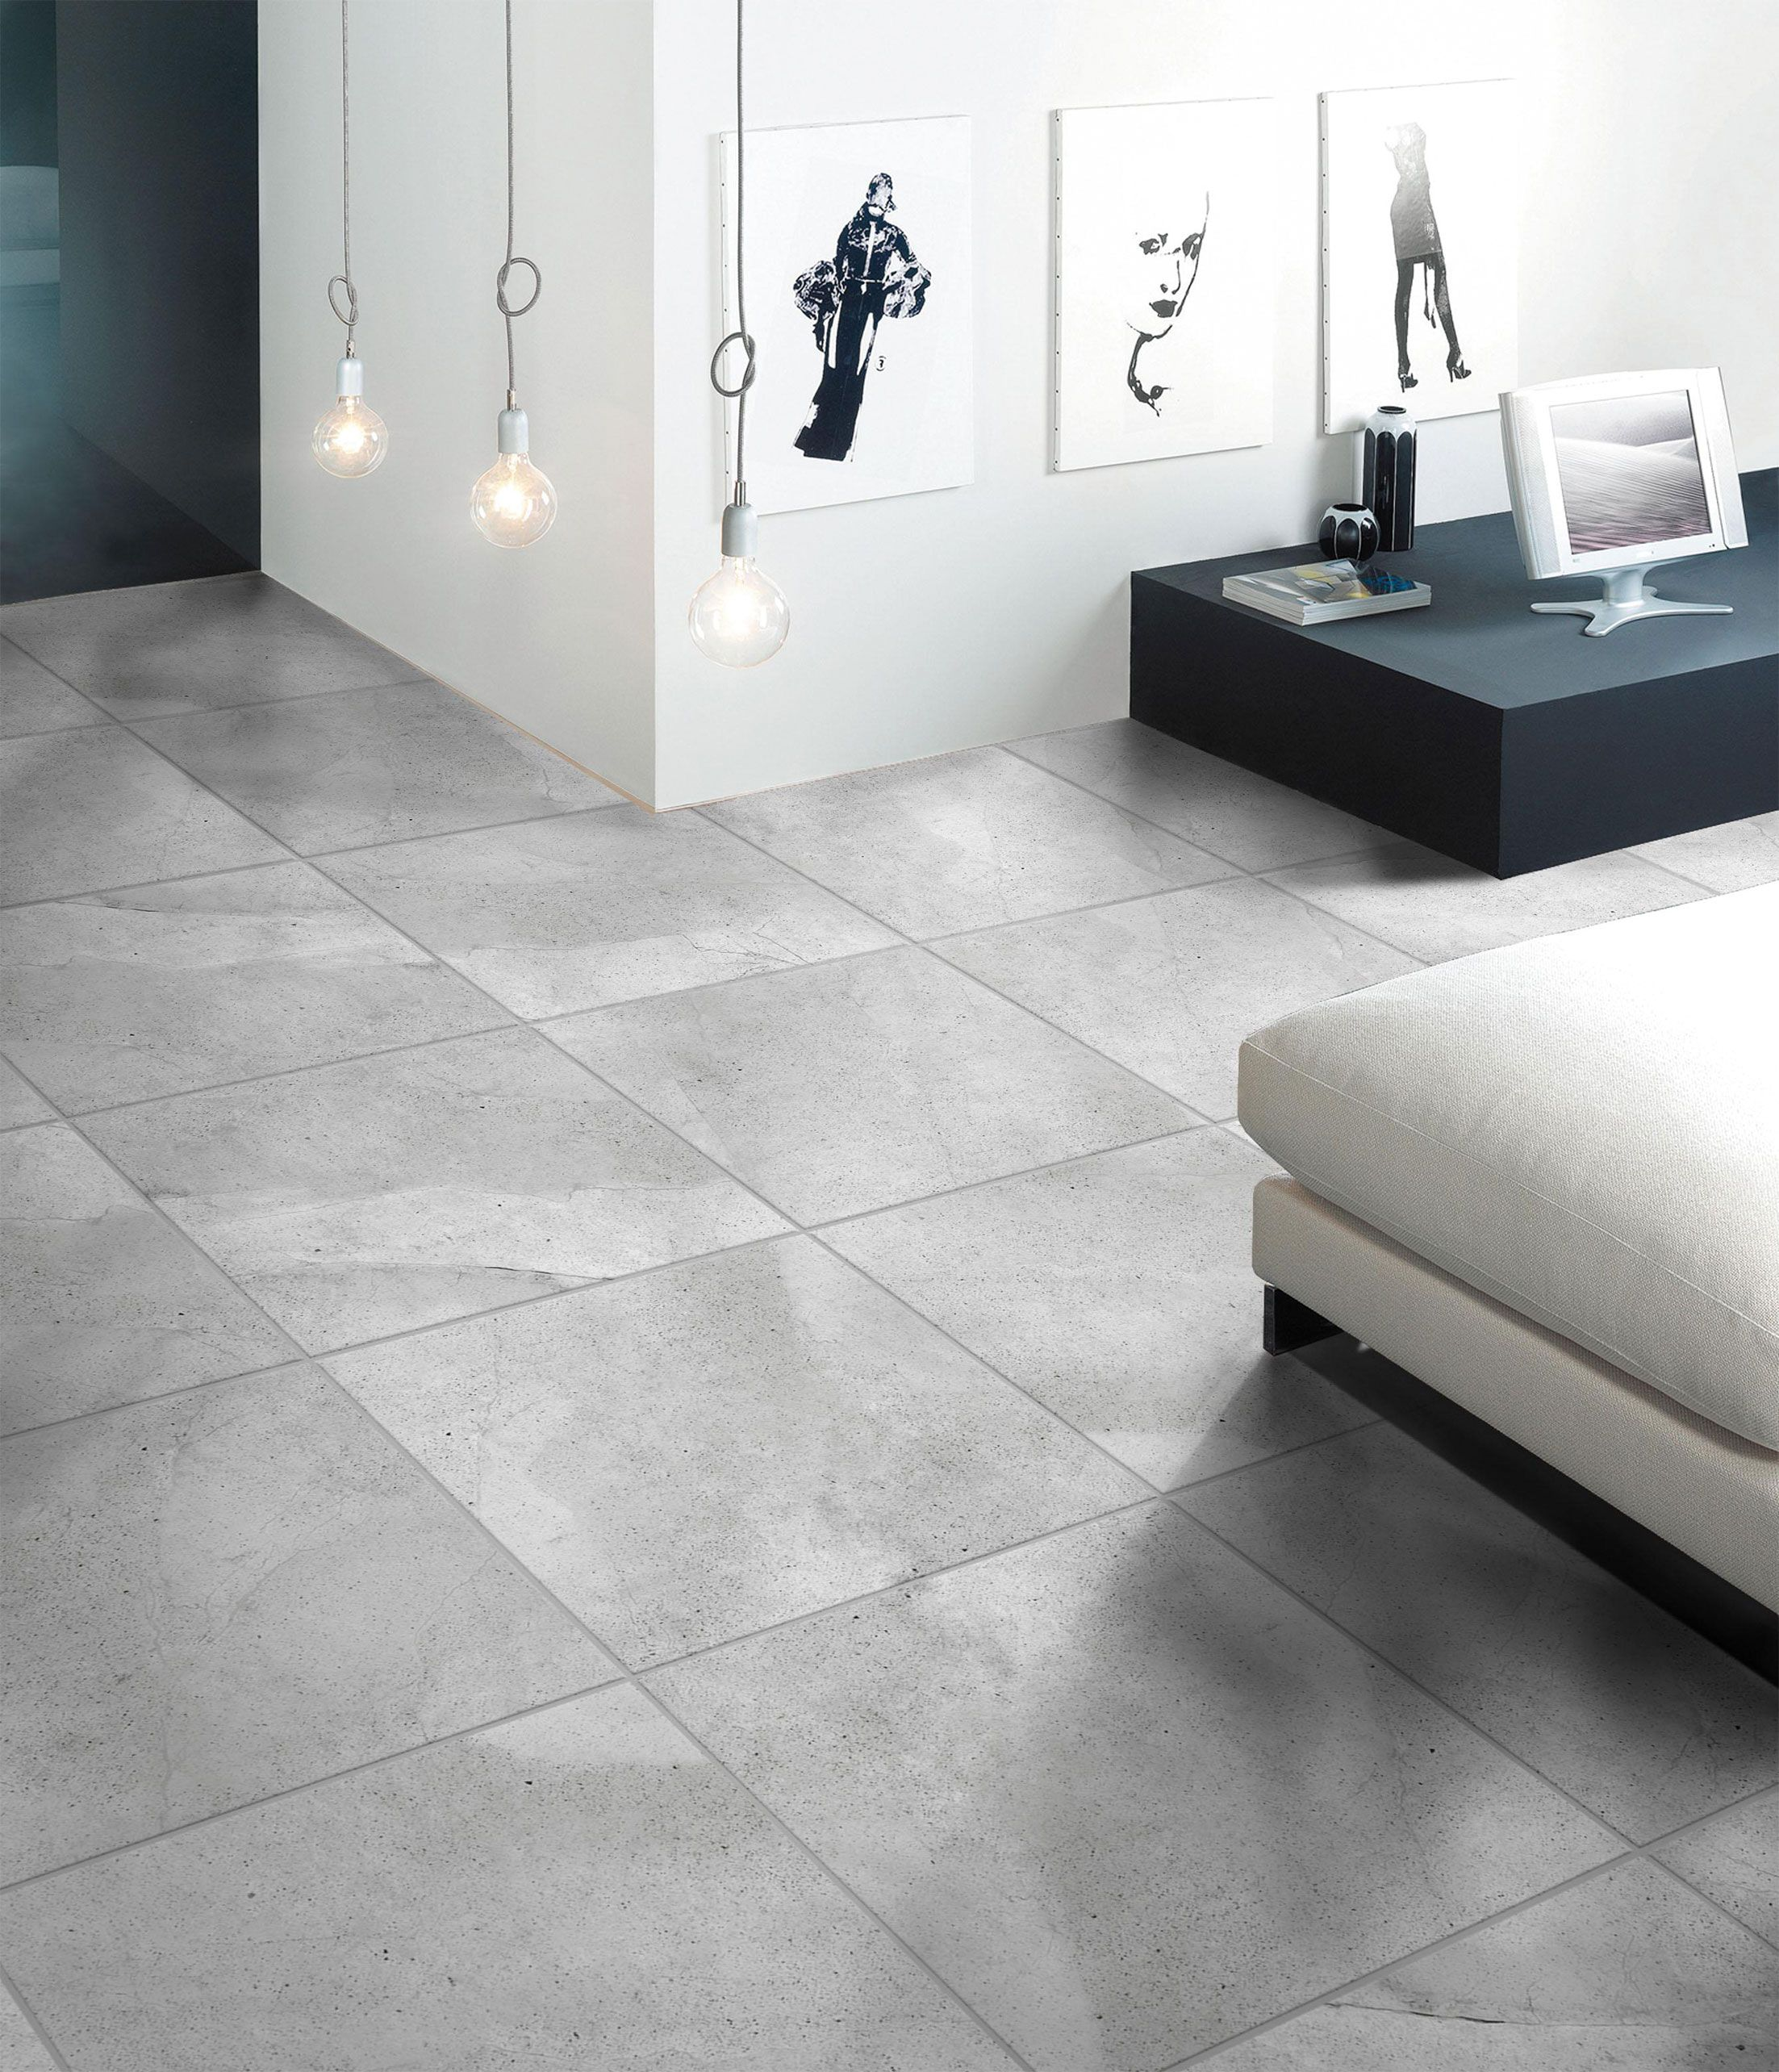 Graphite porcelain tiles in ash ideas for the house pinterest graphite porcelain tiles in ash dailygadgetfo Choice Image